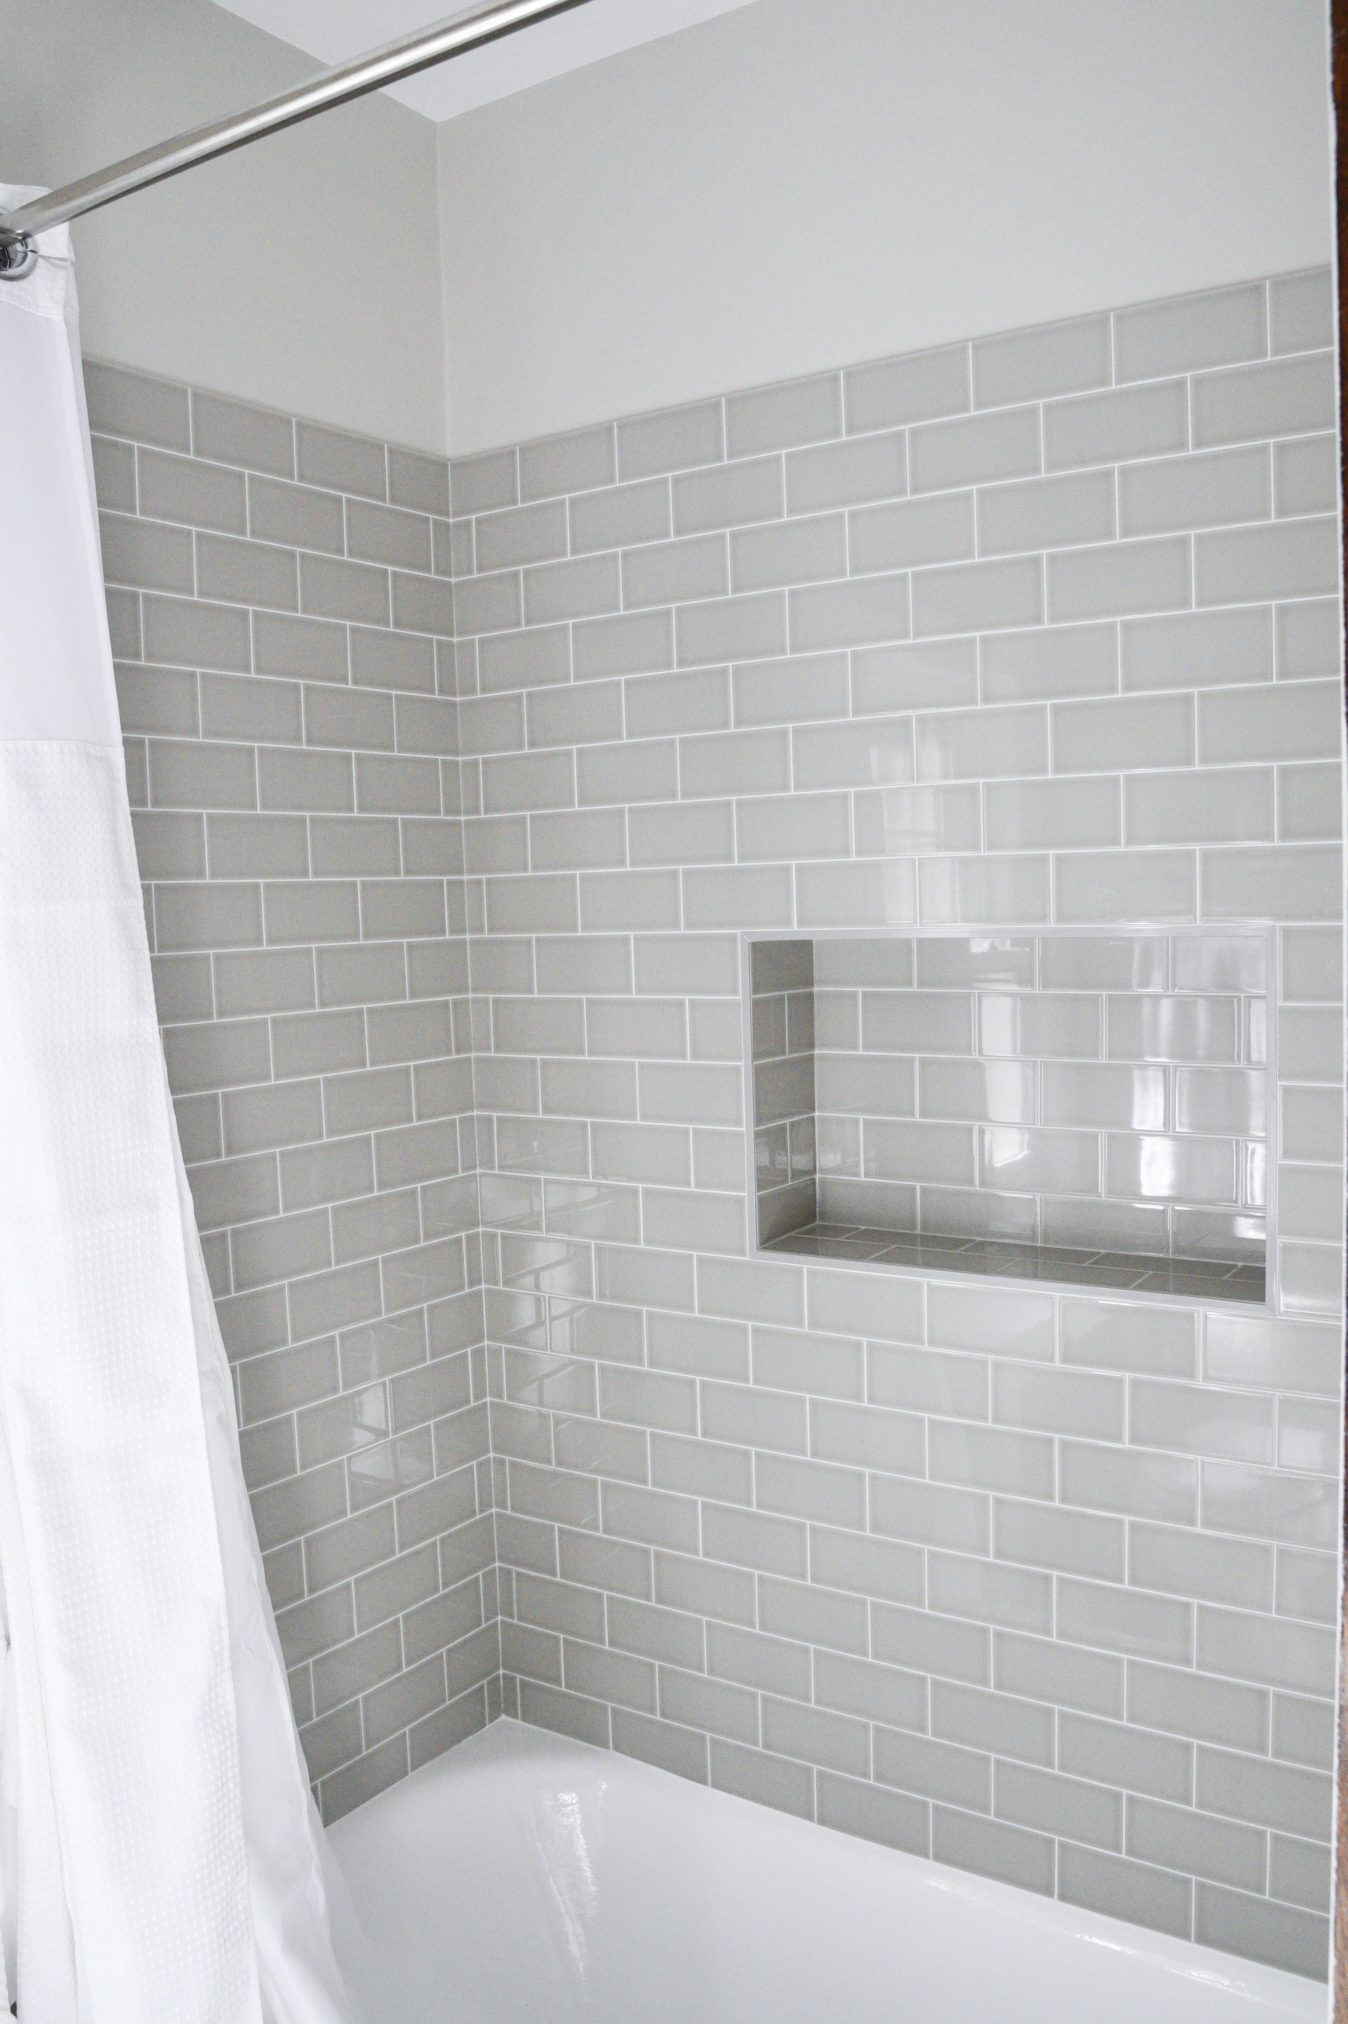 OUR HOME | Bathroom | Pinterest | Gray subway tiles, Subway tiles ...